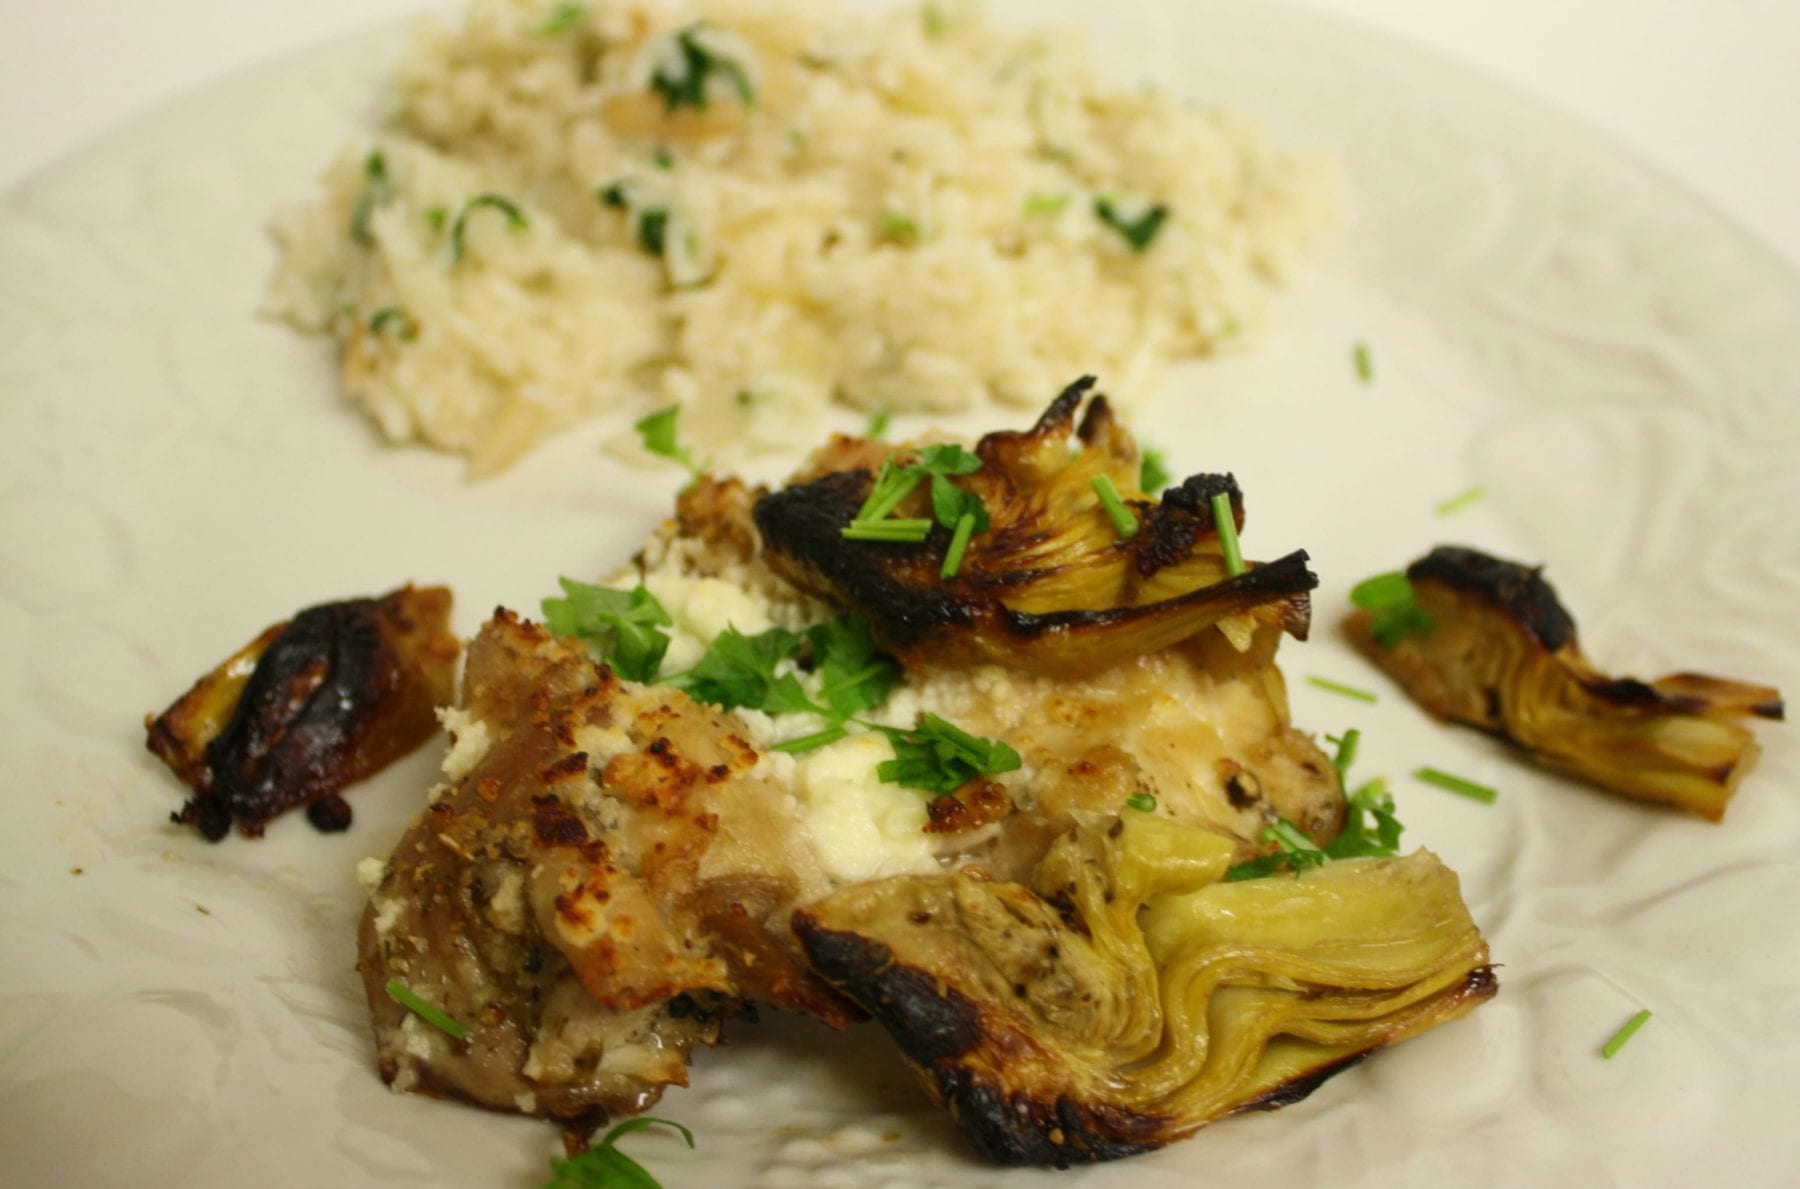 Broiled Chicken Thighs with Artichoke Hearts and Feta